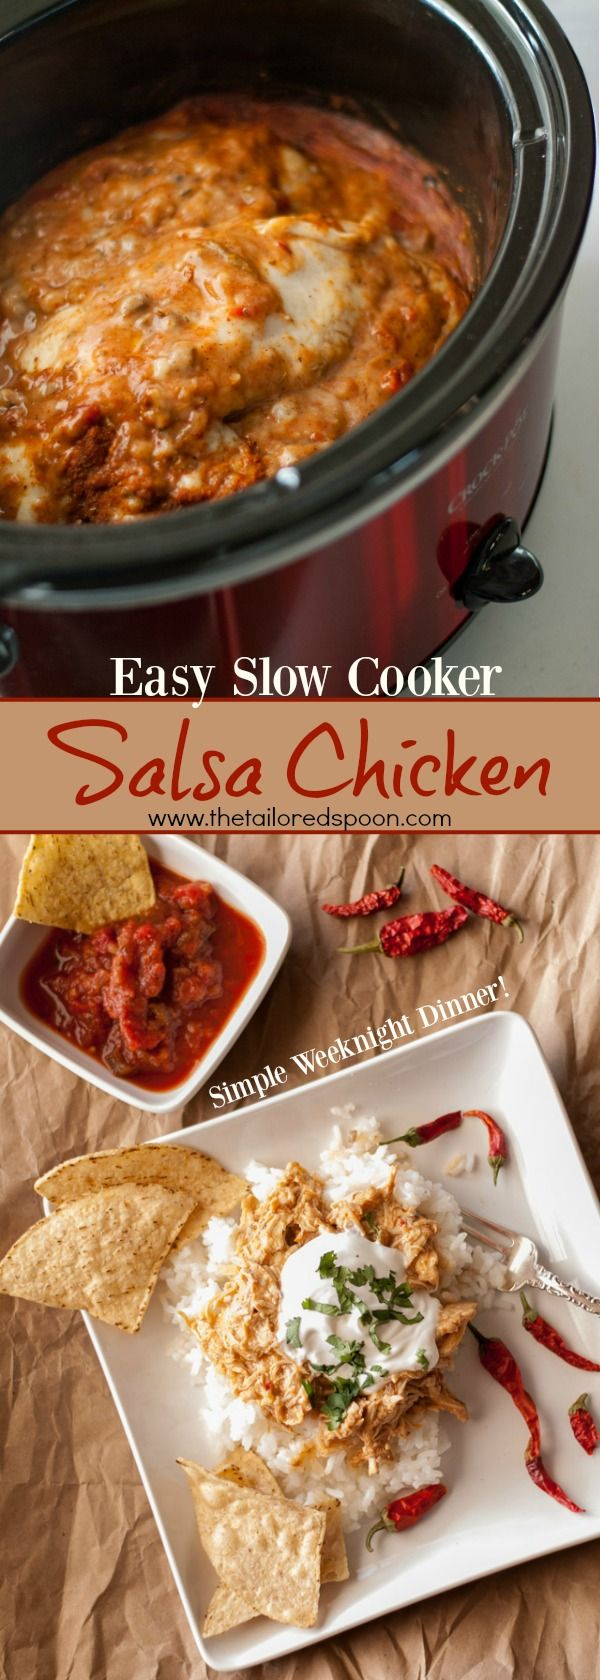 A quick and easy Slow Cooker Salsa Chicken recipe is made only with 5 ingredients!  #leftovers #holidays #chicken #SlowCooker